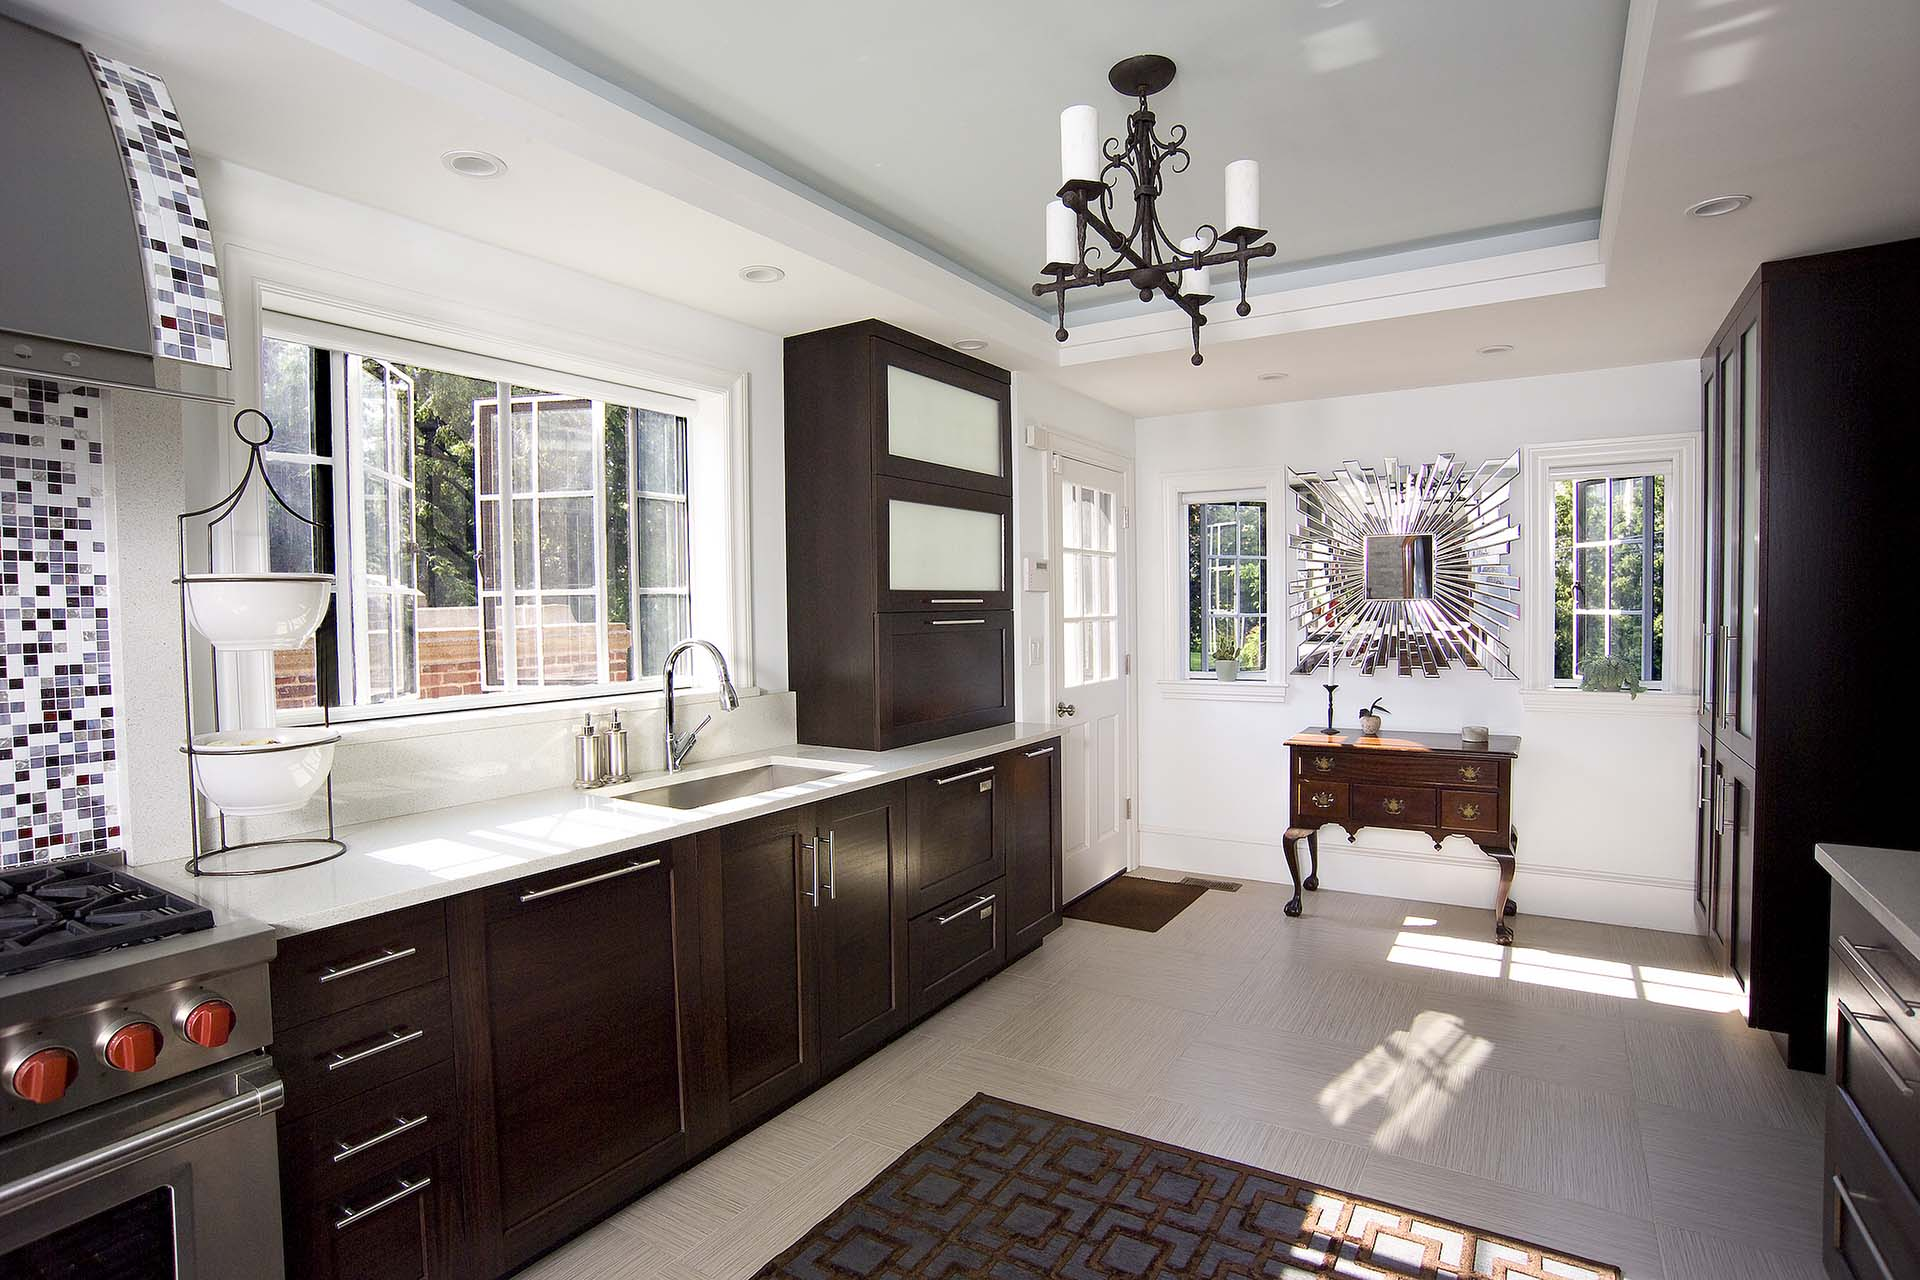 Phantom window screens are perfect in this open, airy kitchen